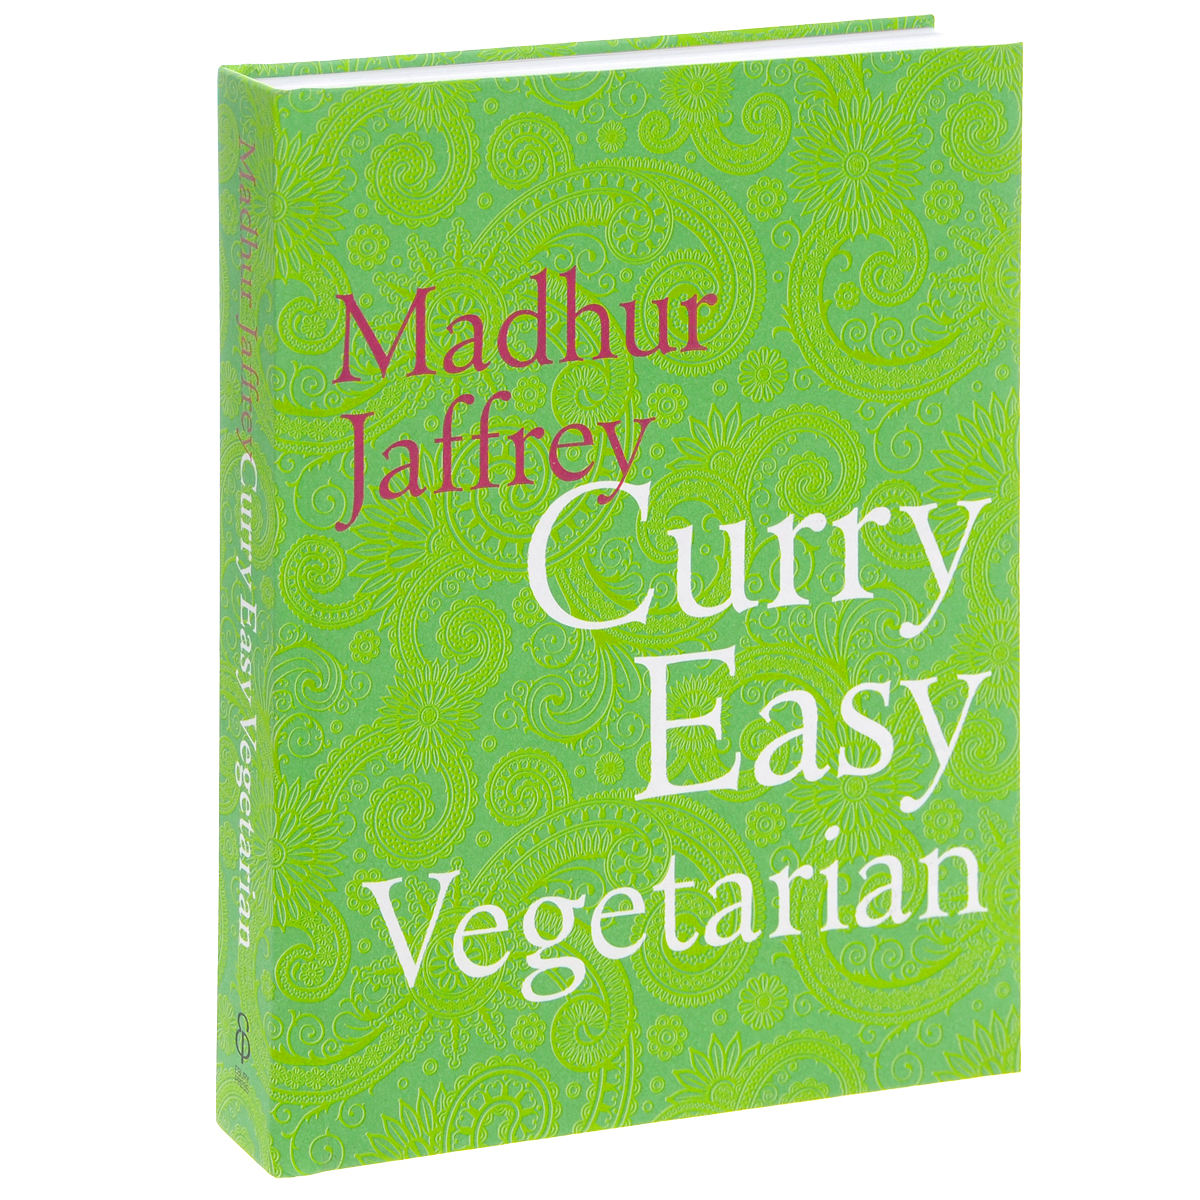 Curry Easy Vegetarian everyday italian 125 simple and delicious recipes